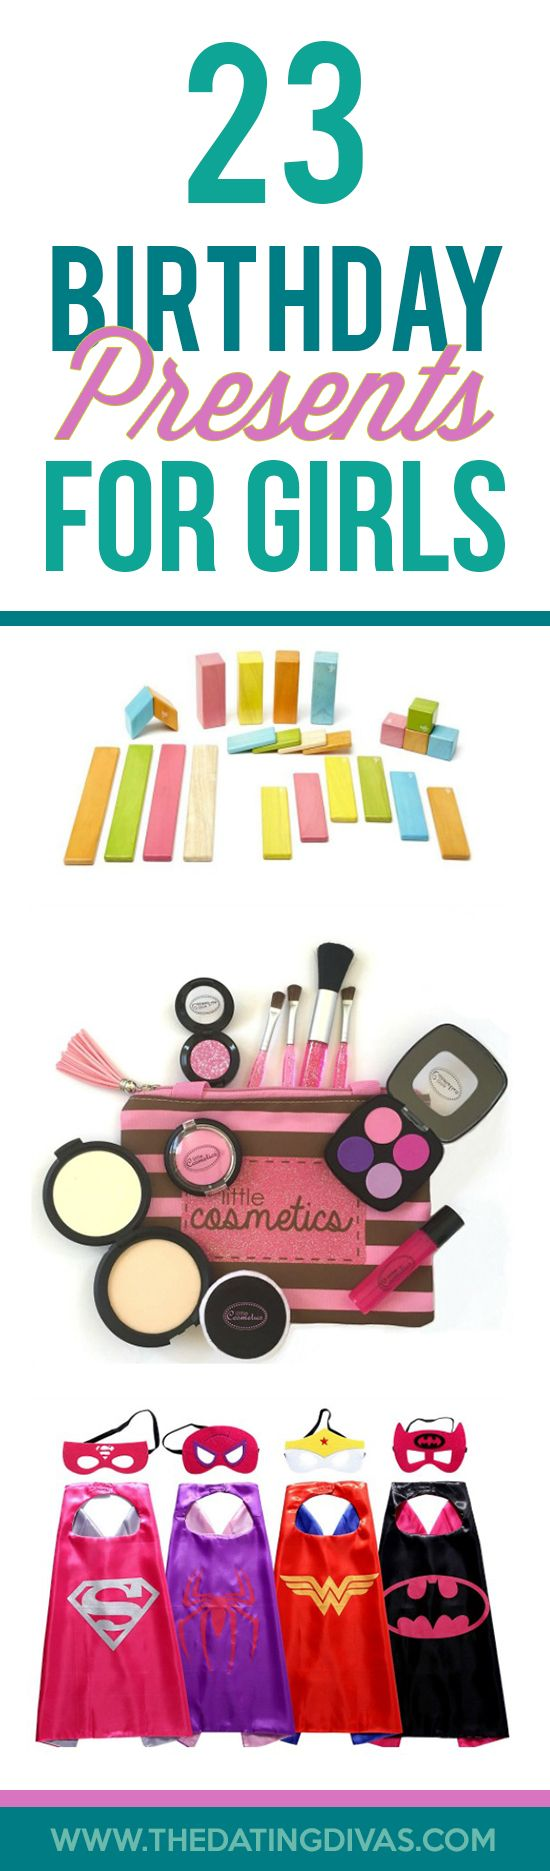 Birthday Present Ideas for Girls- so many cute ideas. Saving this list for the next birthday party!